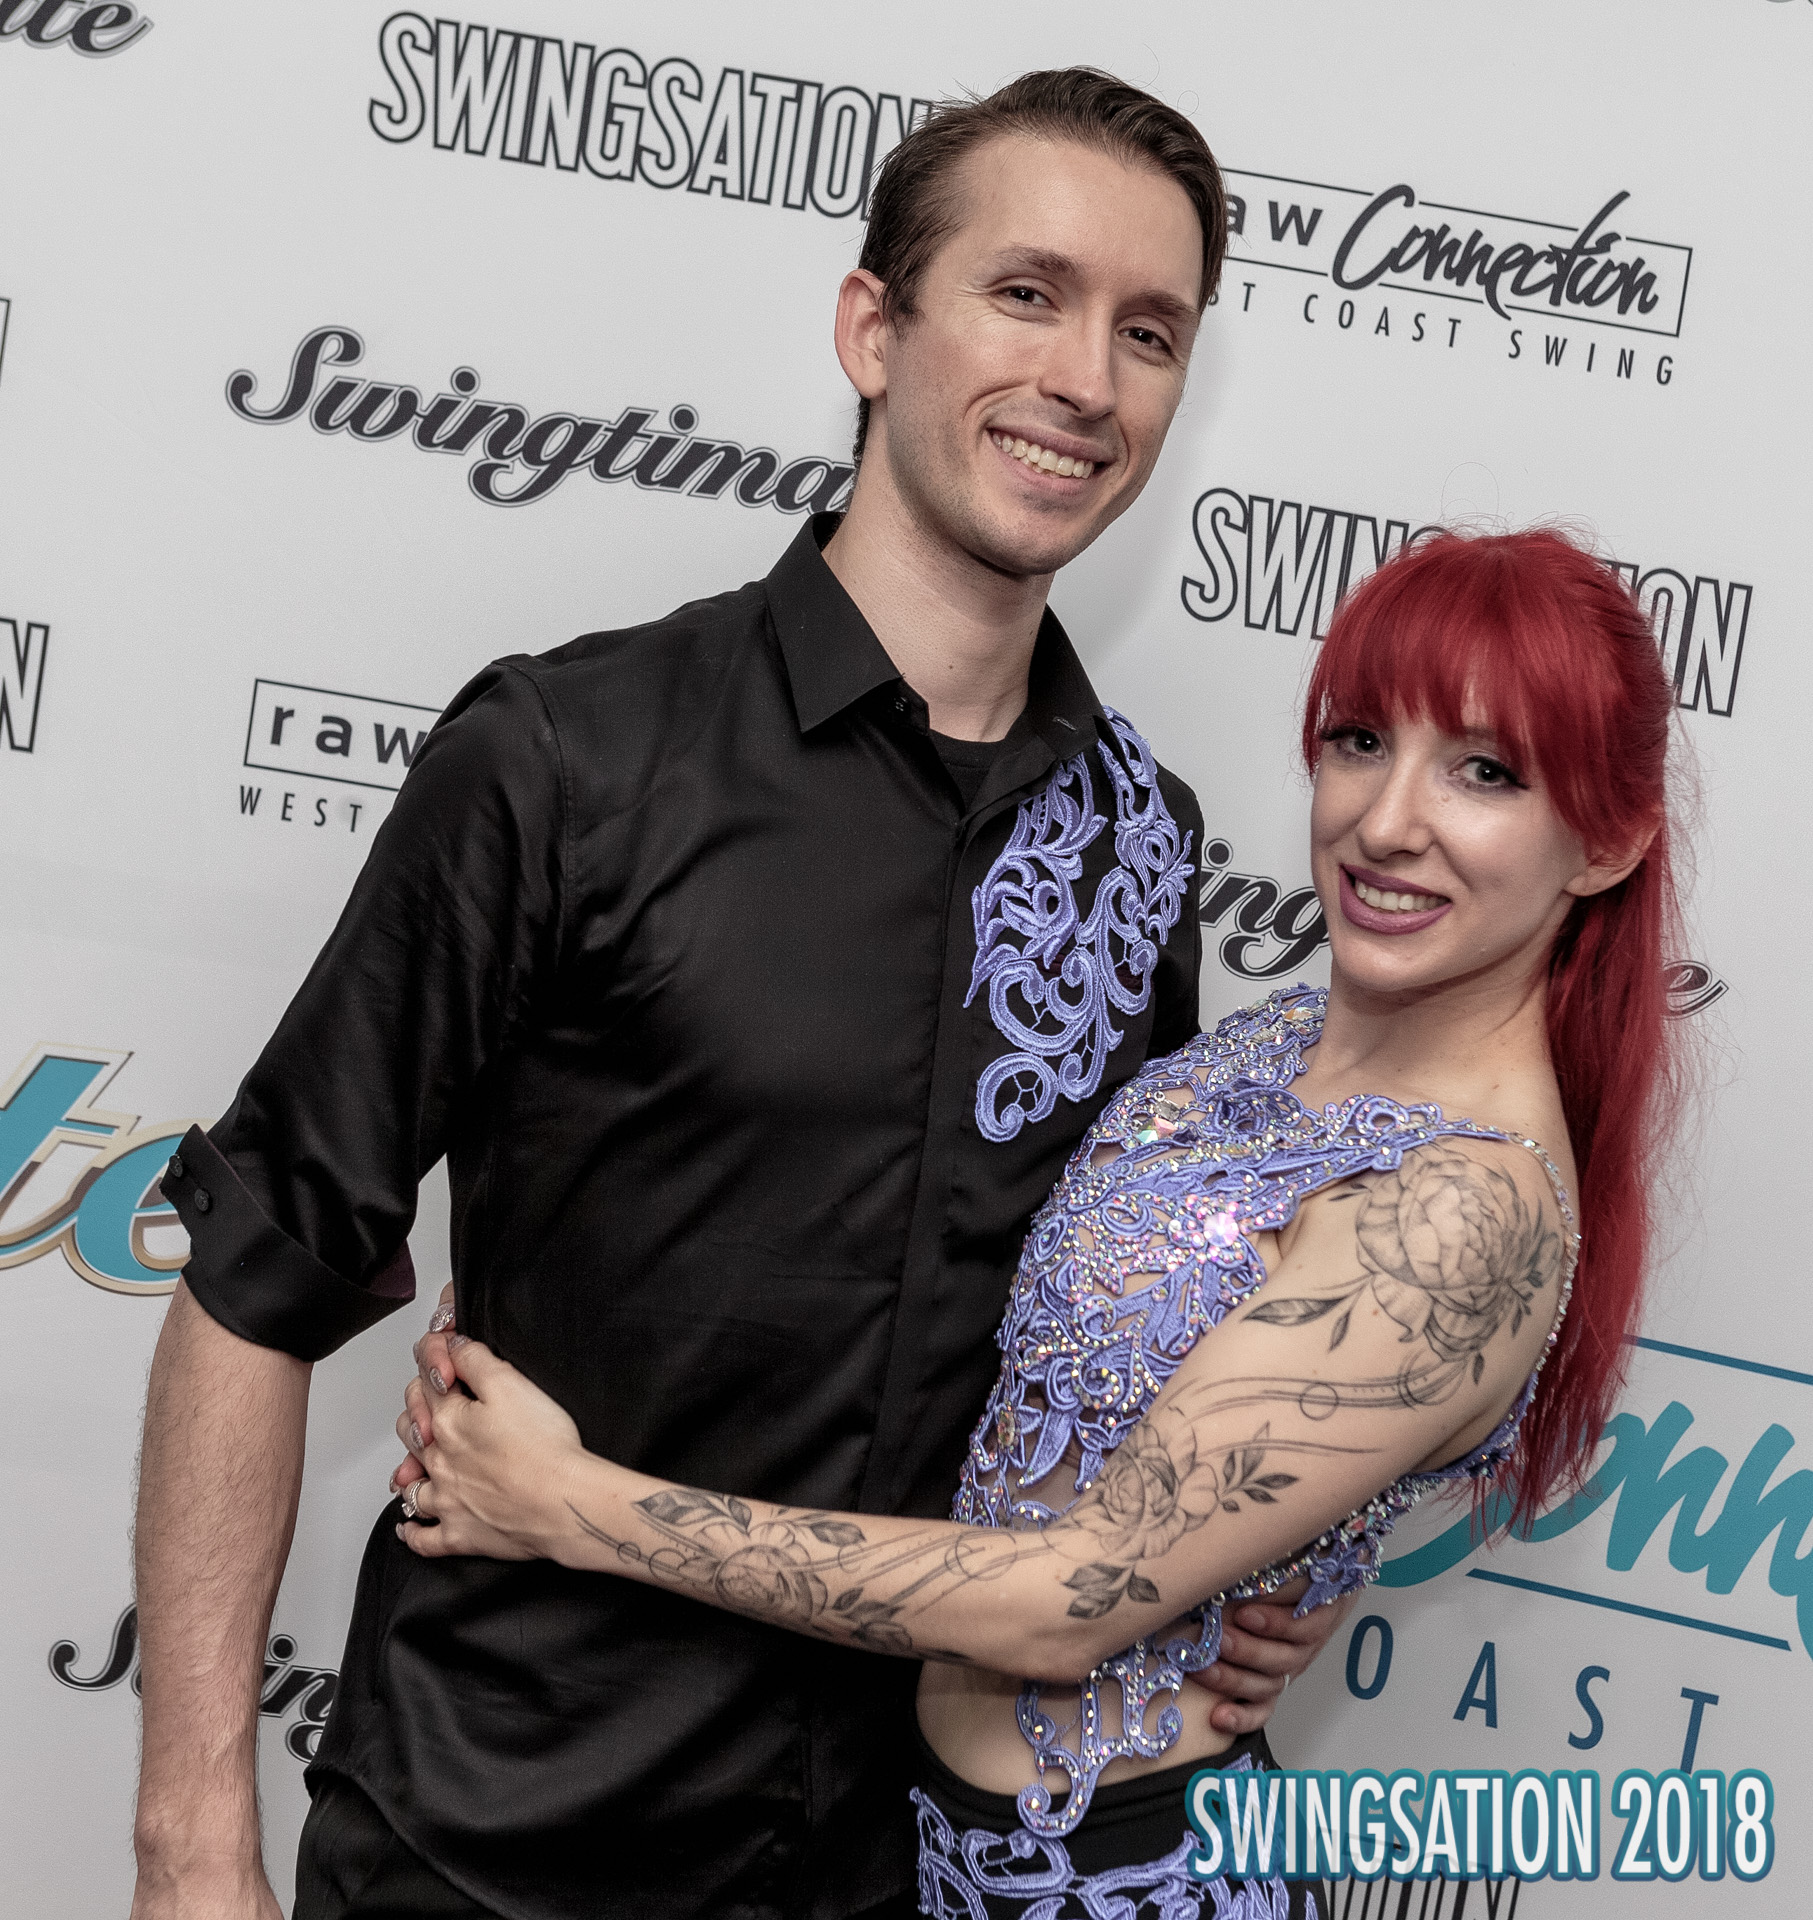 20180527_Swingsation2018_RW_1091 copy